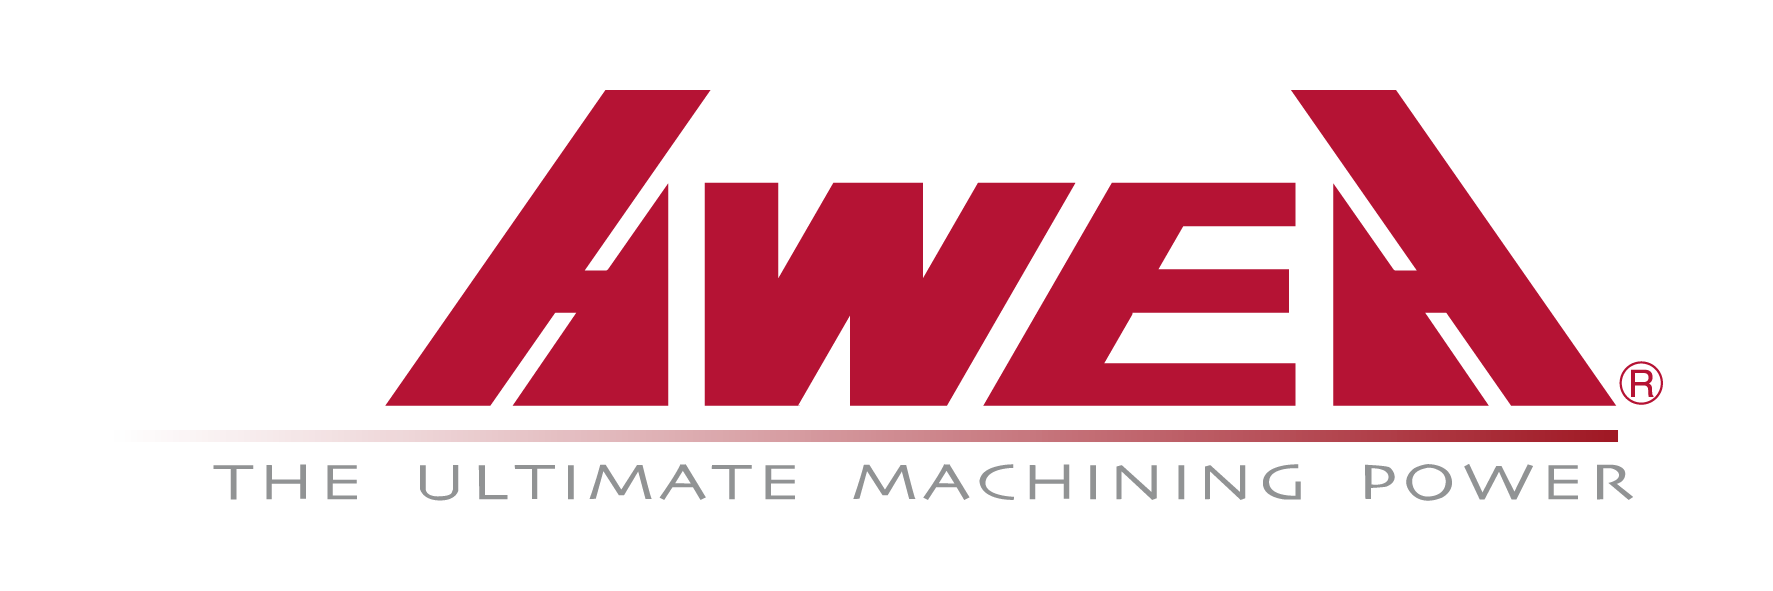 AWEA MECHANTRONIC CO., LTD.